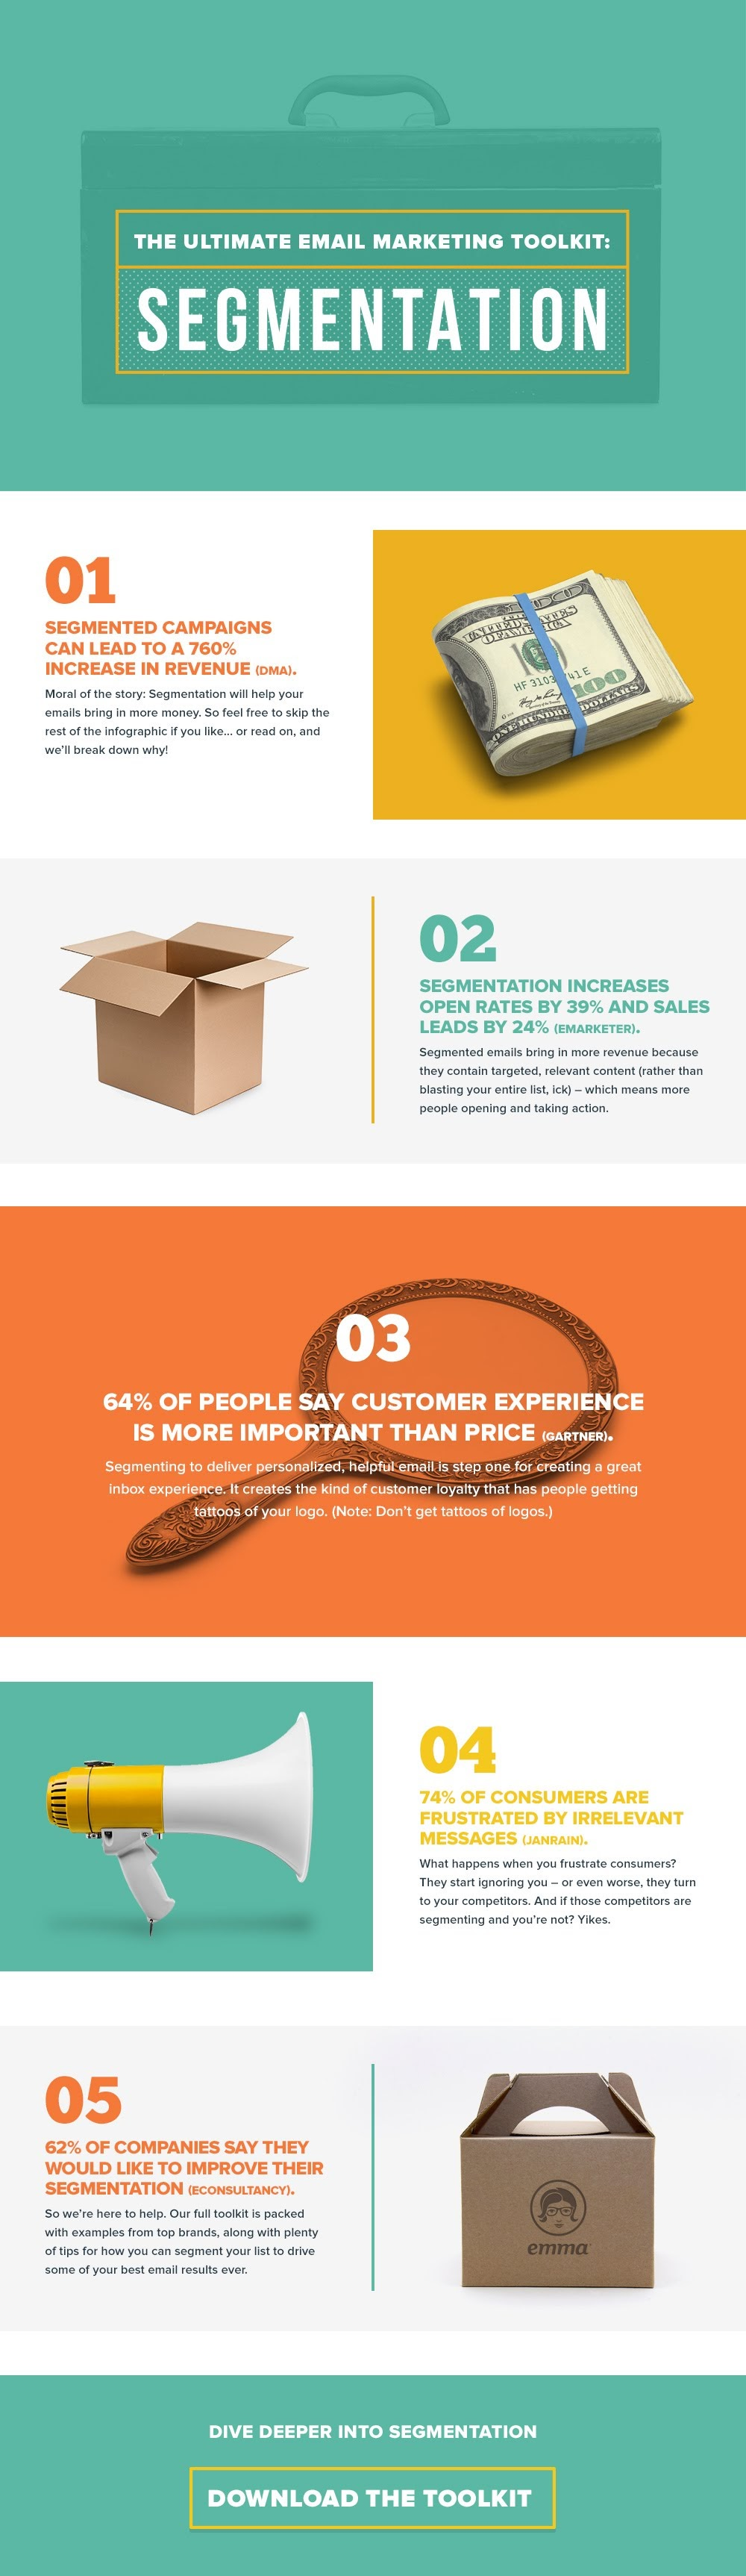 The Ultimate Email Marketing Toolkit: Segmentation #Infographic